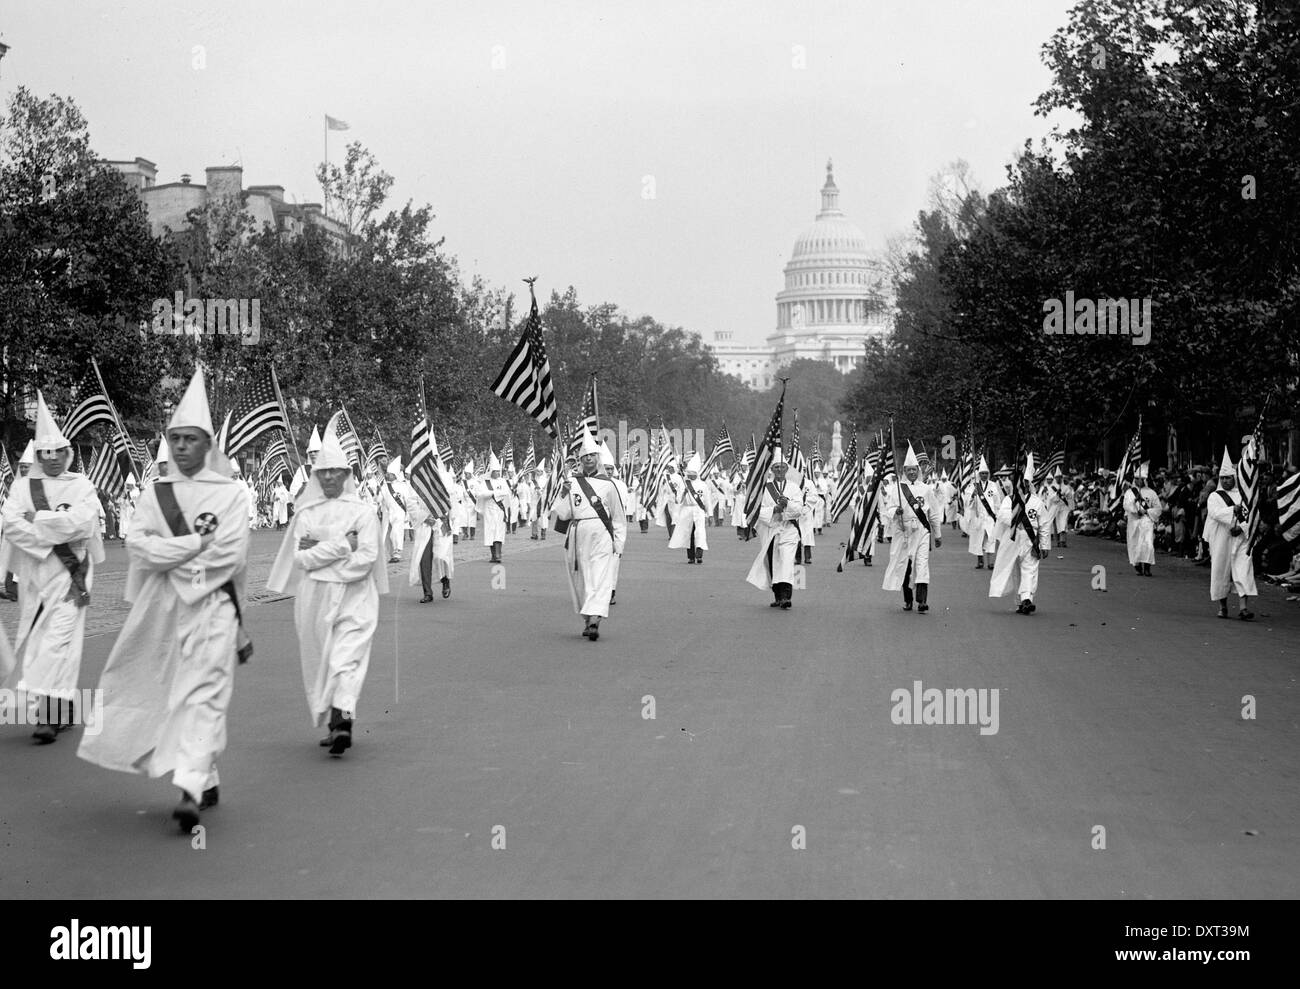 an overview of the ku klux klan in the united states The ku klux klan was formed at the end of the civil war during reconstruction  by the former  what is the rise of ku klux klan \nthe growing popularity of a  racist terrorist group in the southern united states from 1868 to 1922 share to:.